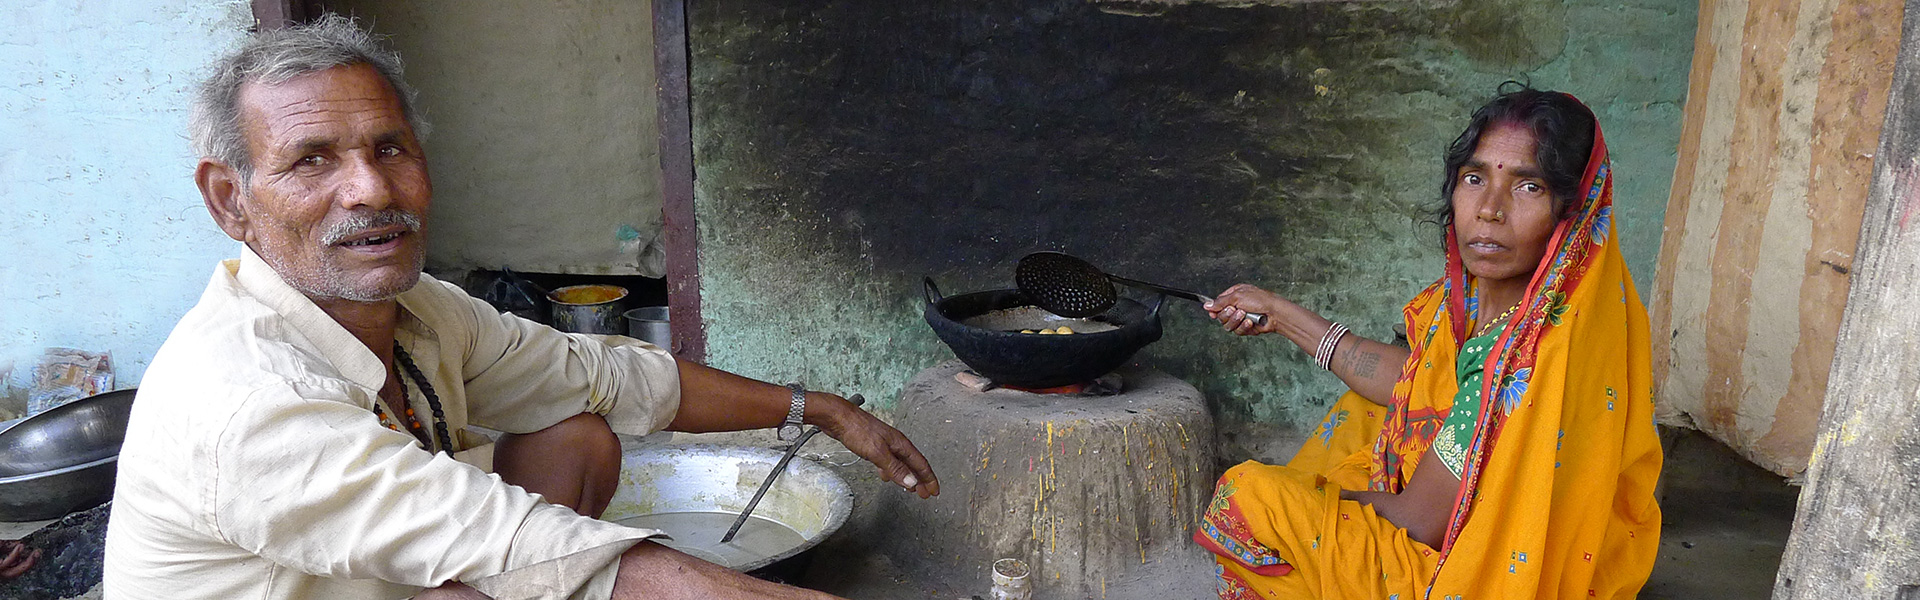 nepal-husbond-and-wife-in-kitchen